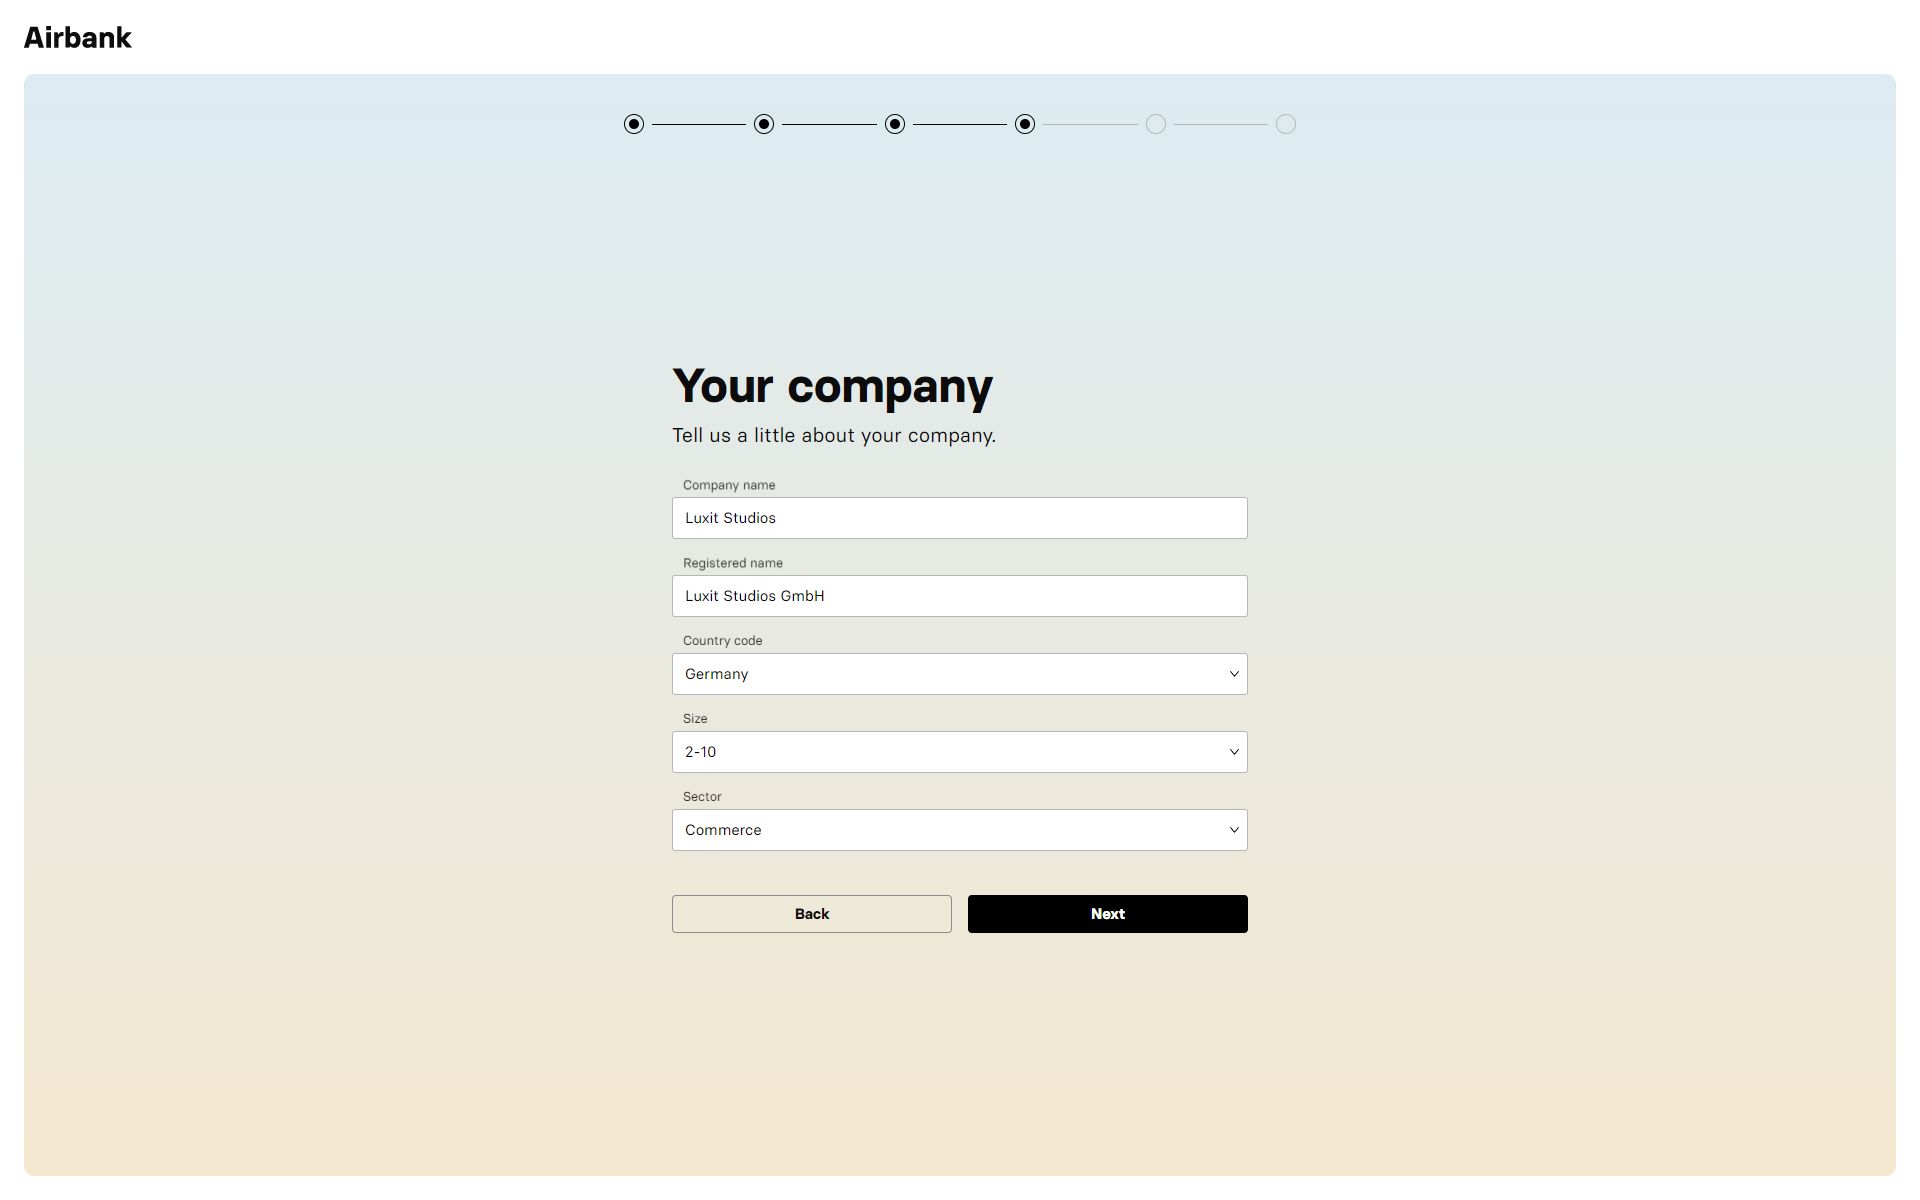 Airbank Onboarding - Company Details